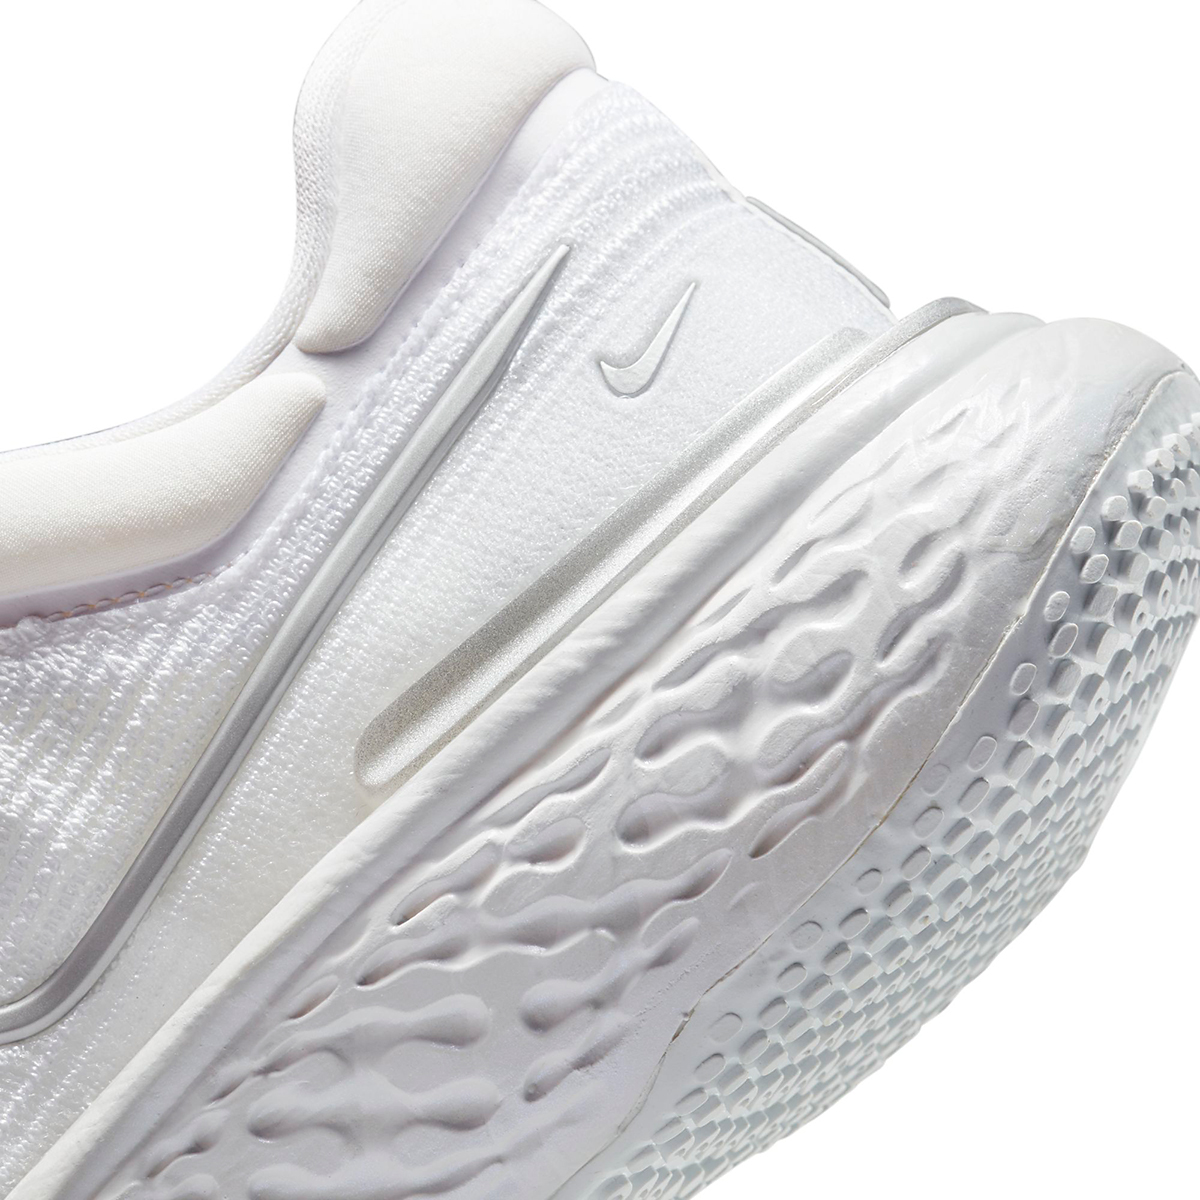 Women's Nike ZoomX Invincible Run Flyknit - Color: White/Metallic Silver/Pure Platinum - Size: 5 - Width: Regular, White/Metallic Silver/Pure Platinum, large, image 6